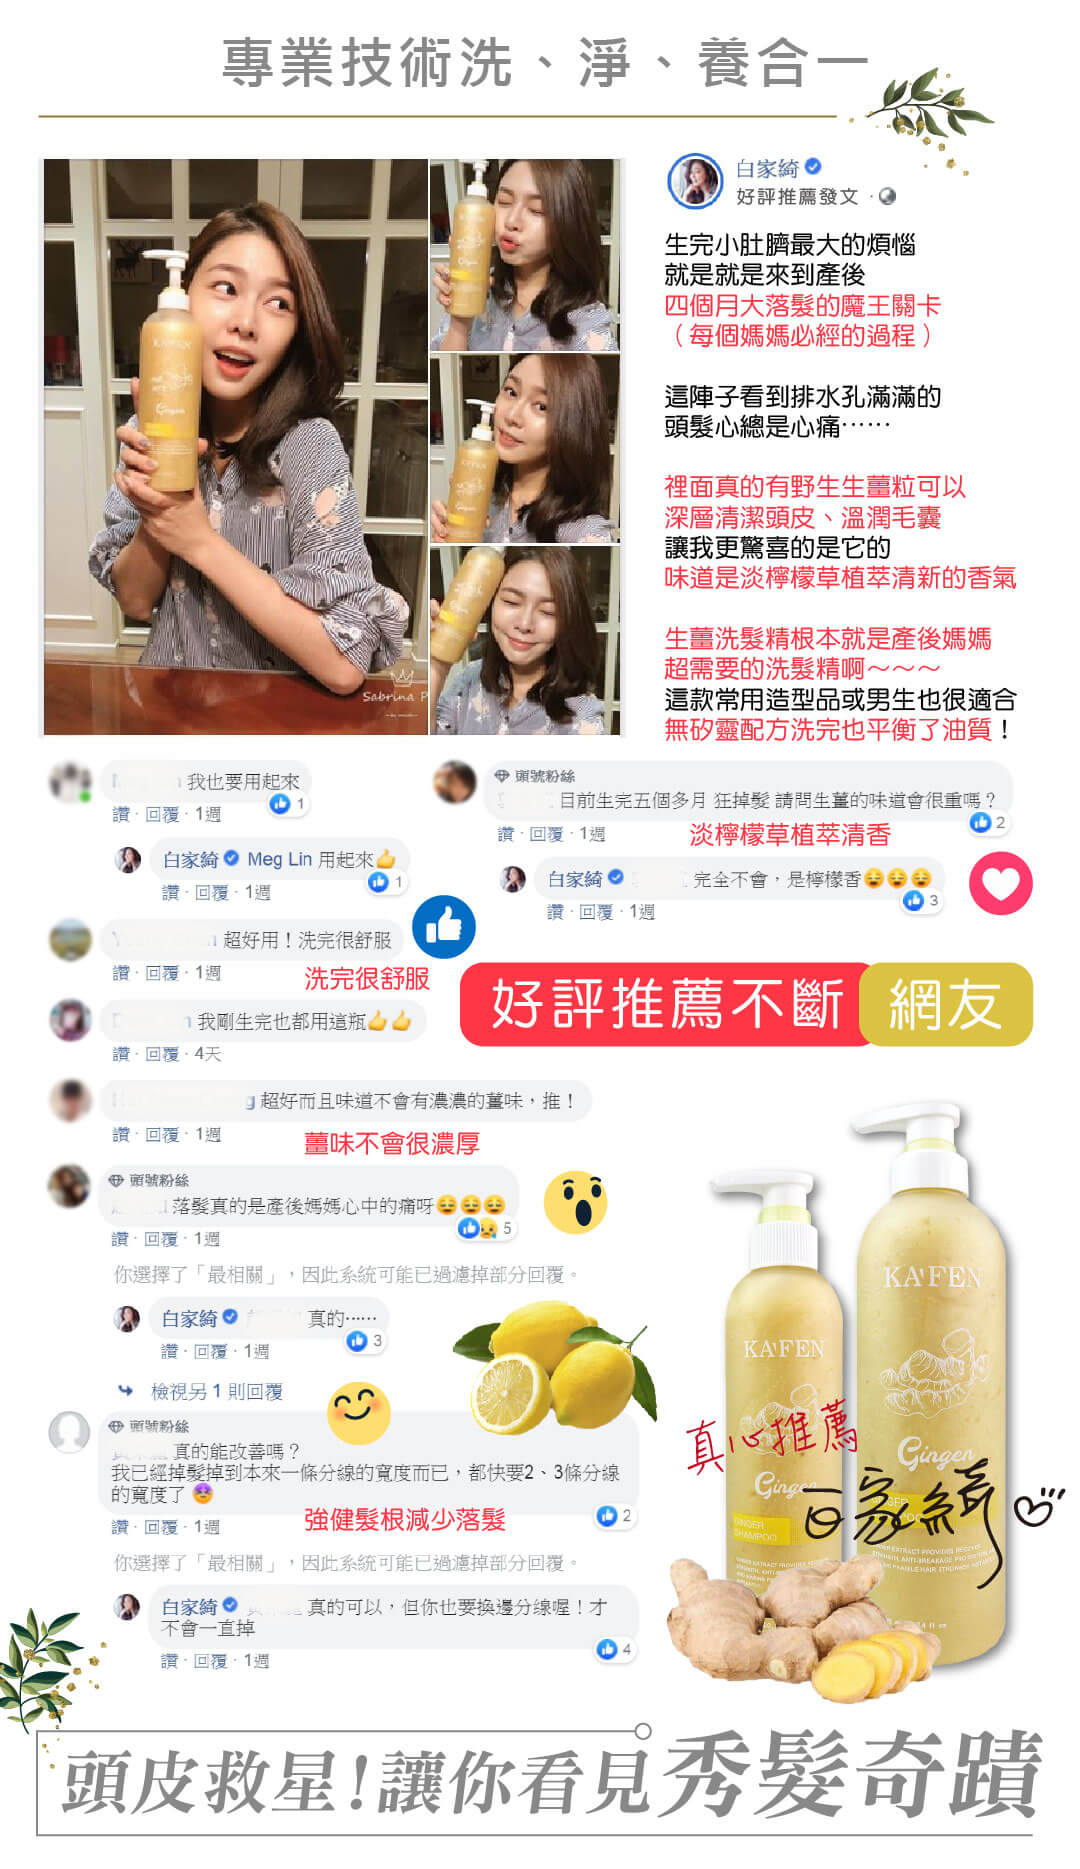 Kafen Ginger Shampoo - Reviews